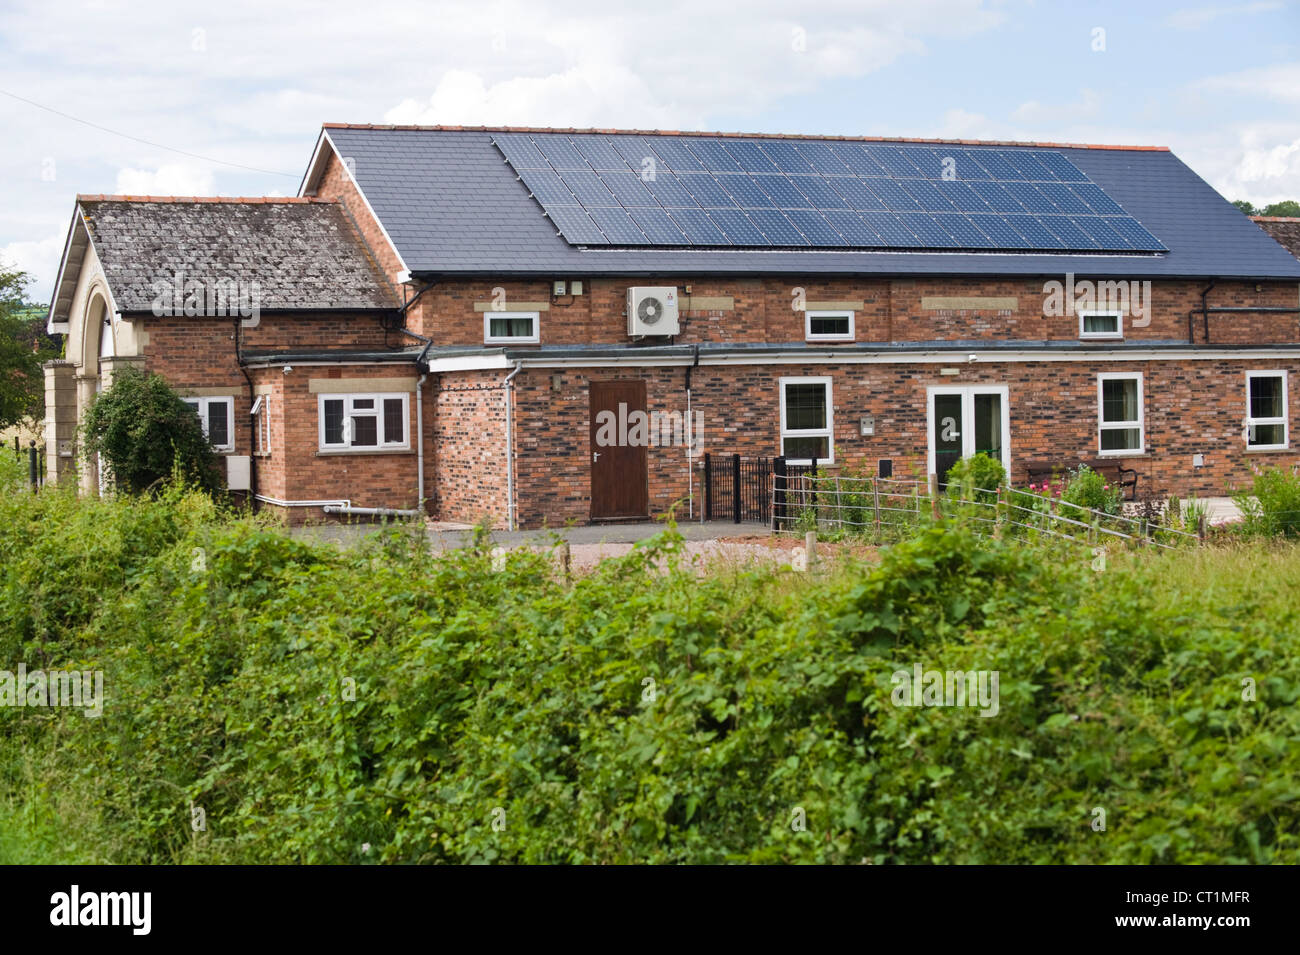 Solar panels on roof of community Memorial Hall in village of Ewyas Harold Herefordshire England UK - Stock Image